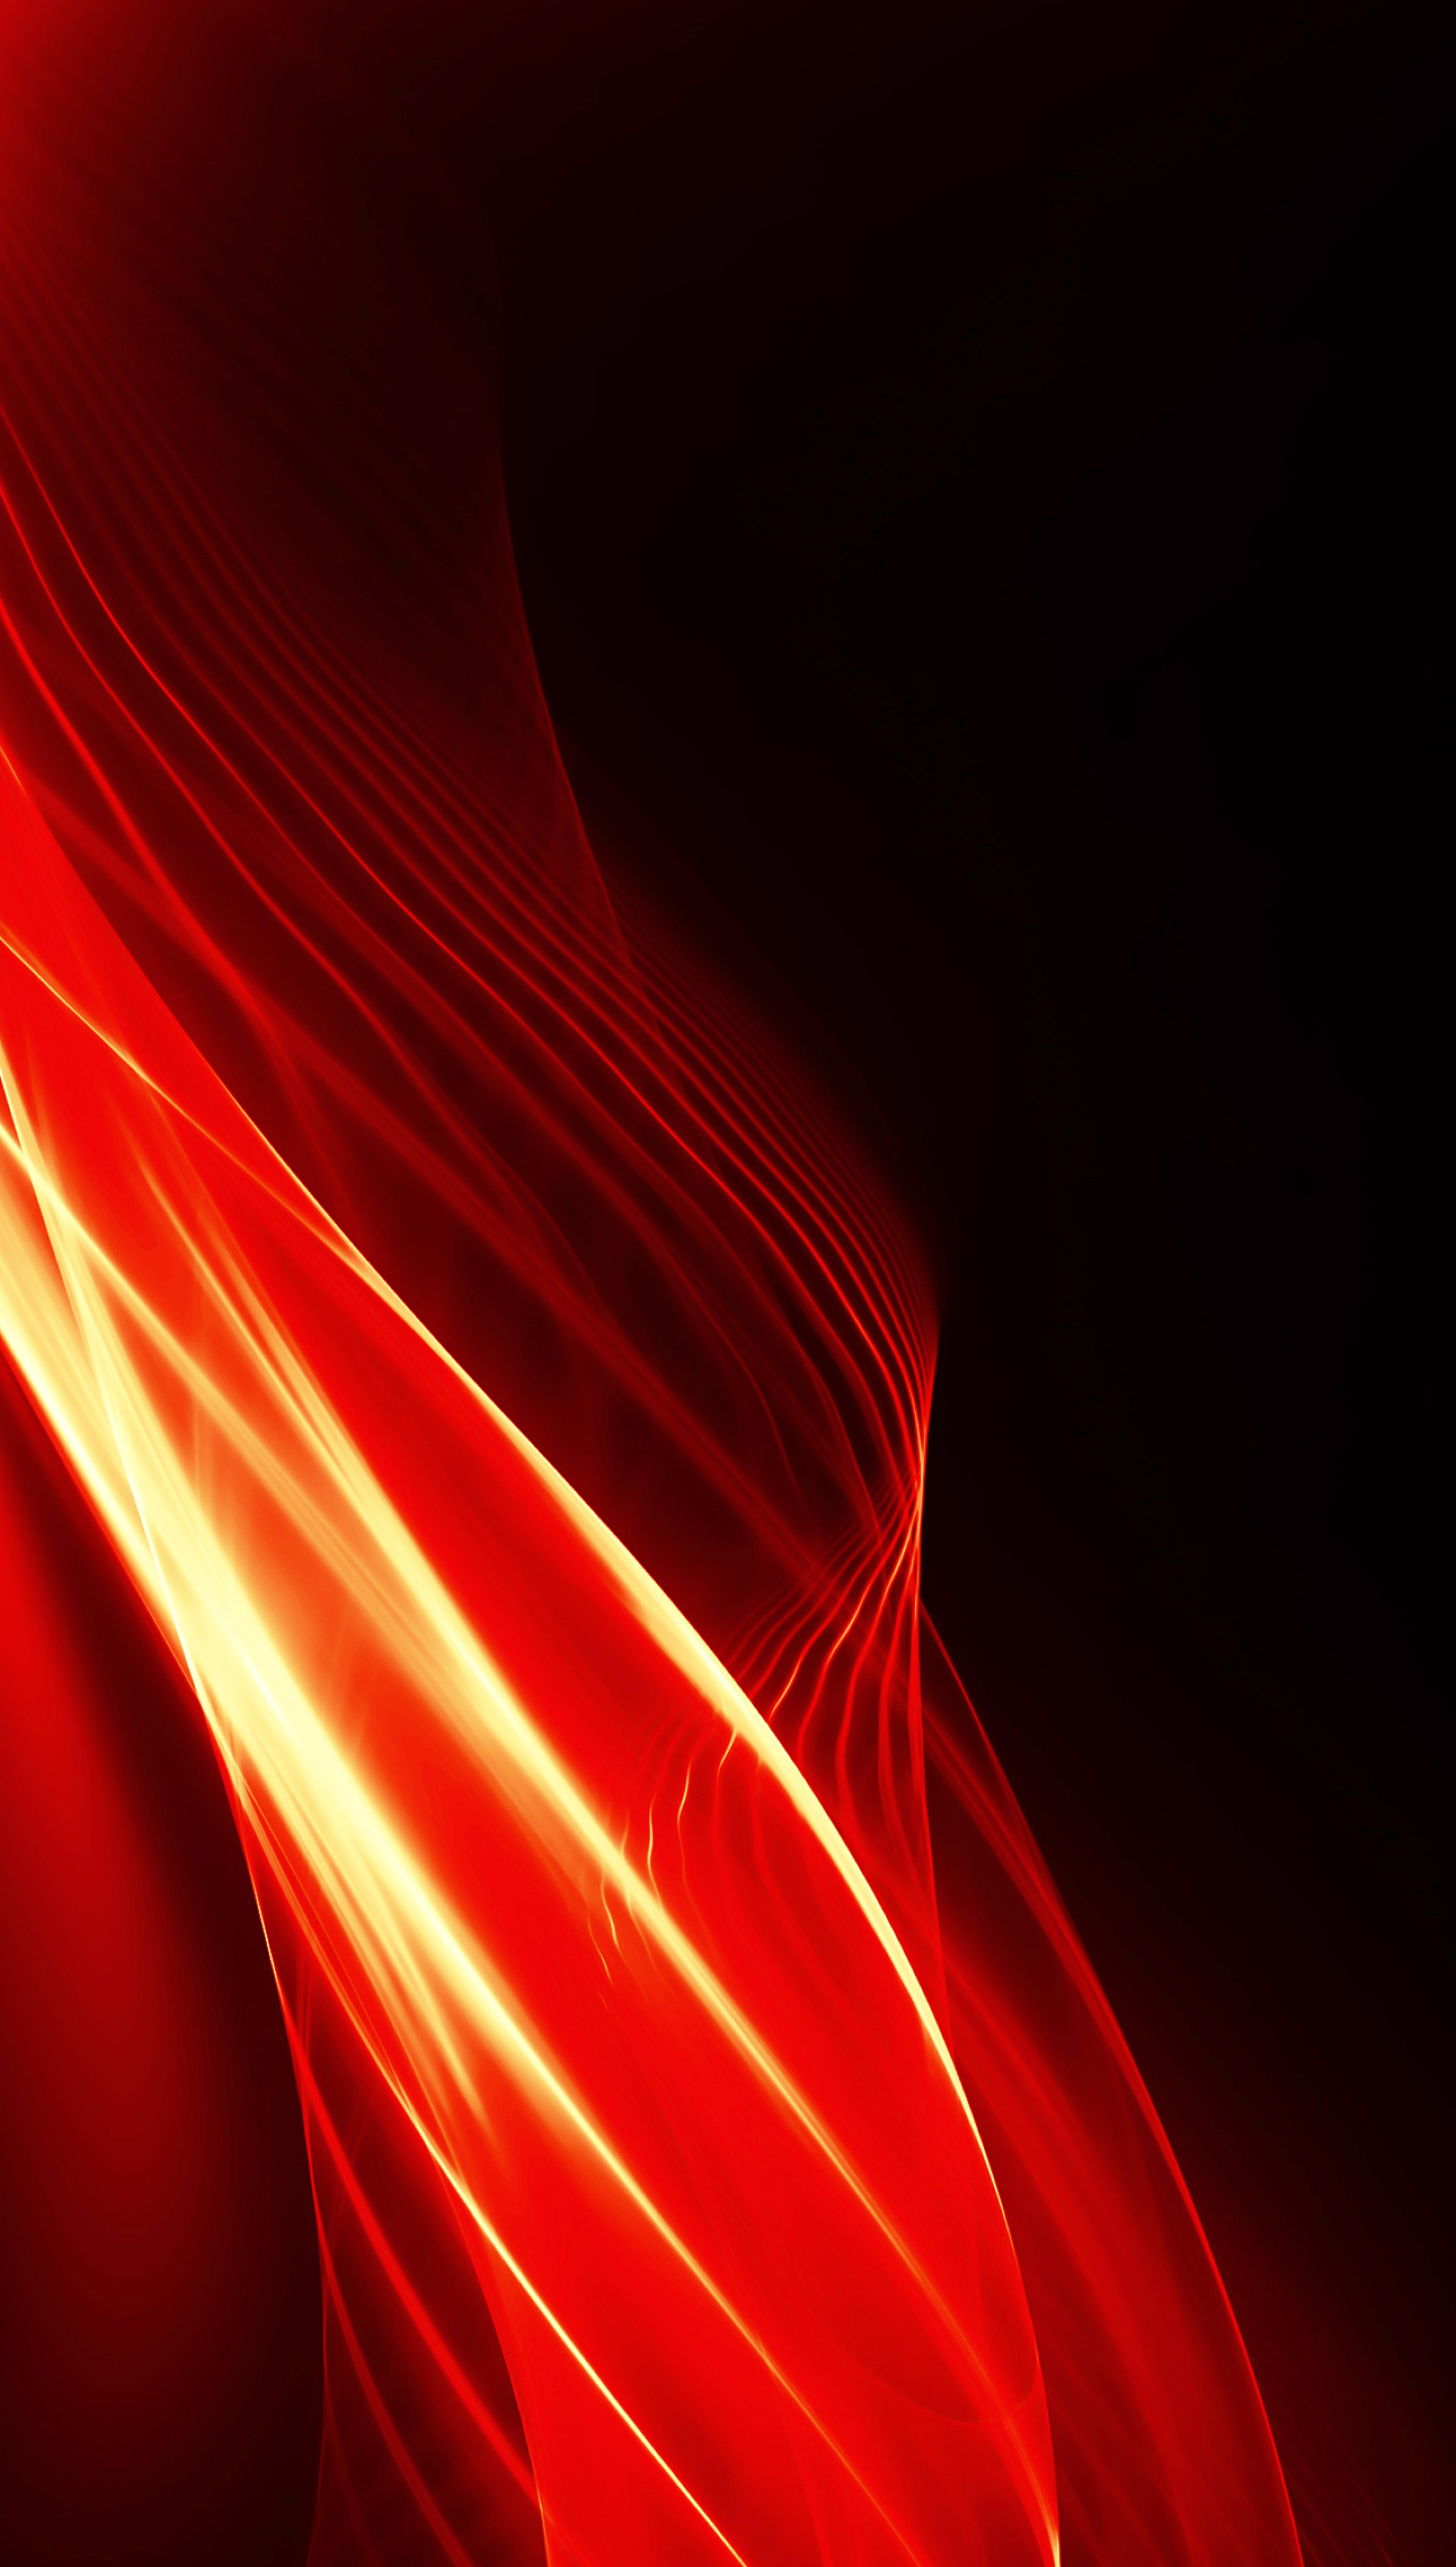 Black background image with red, orange and white light flares